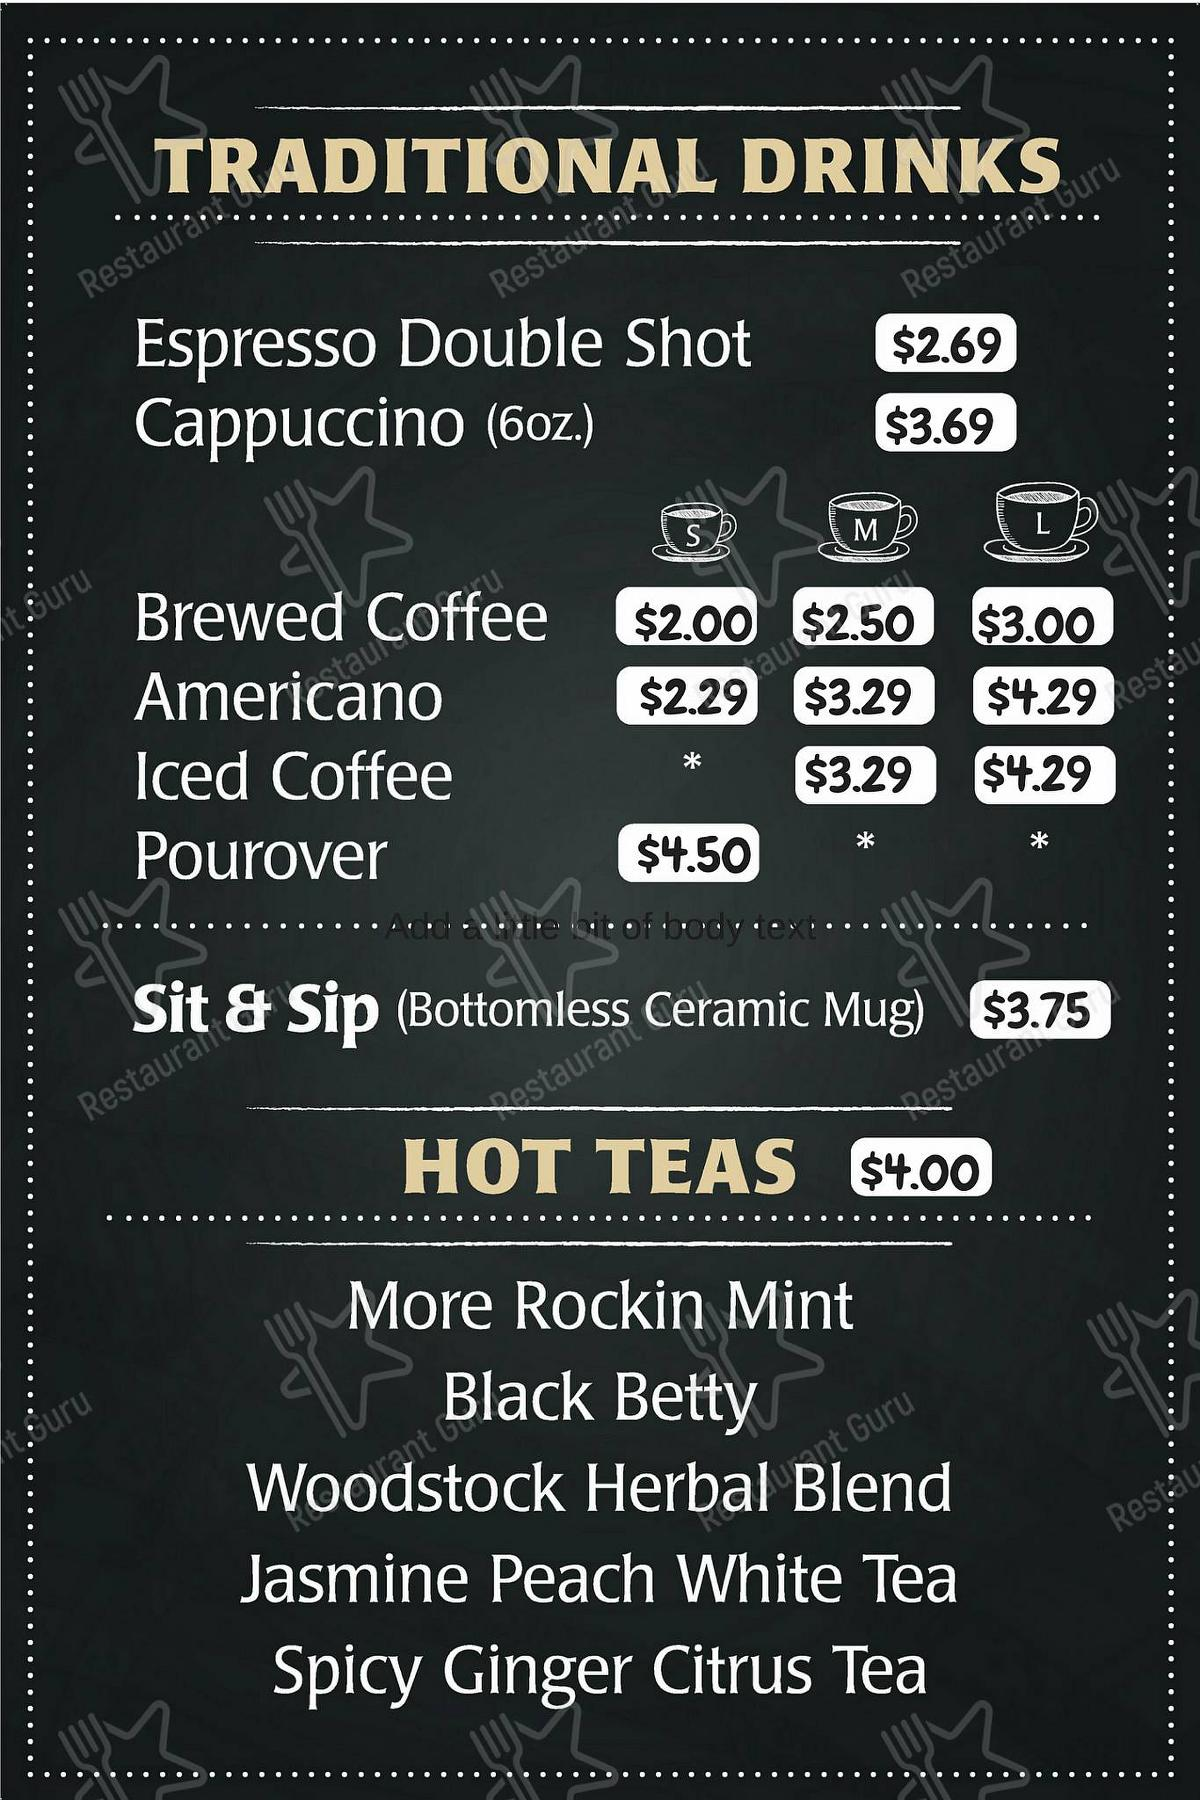 Classic Rock Coffee Co. & Kitchen menu - meals and drinks